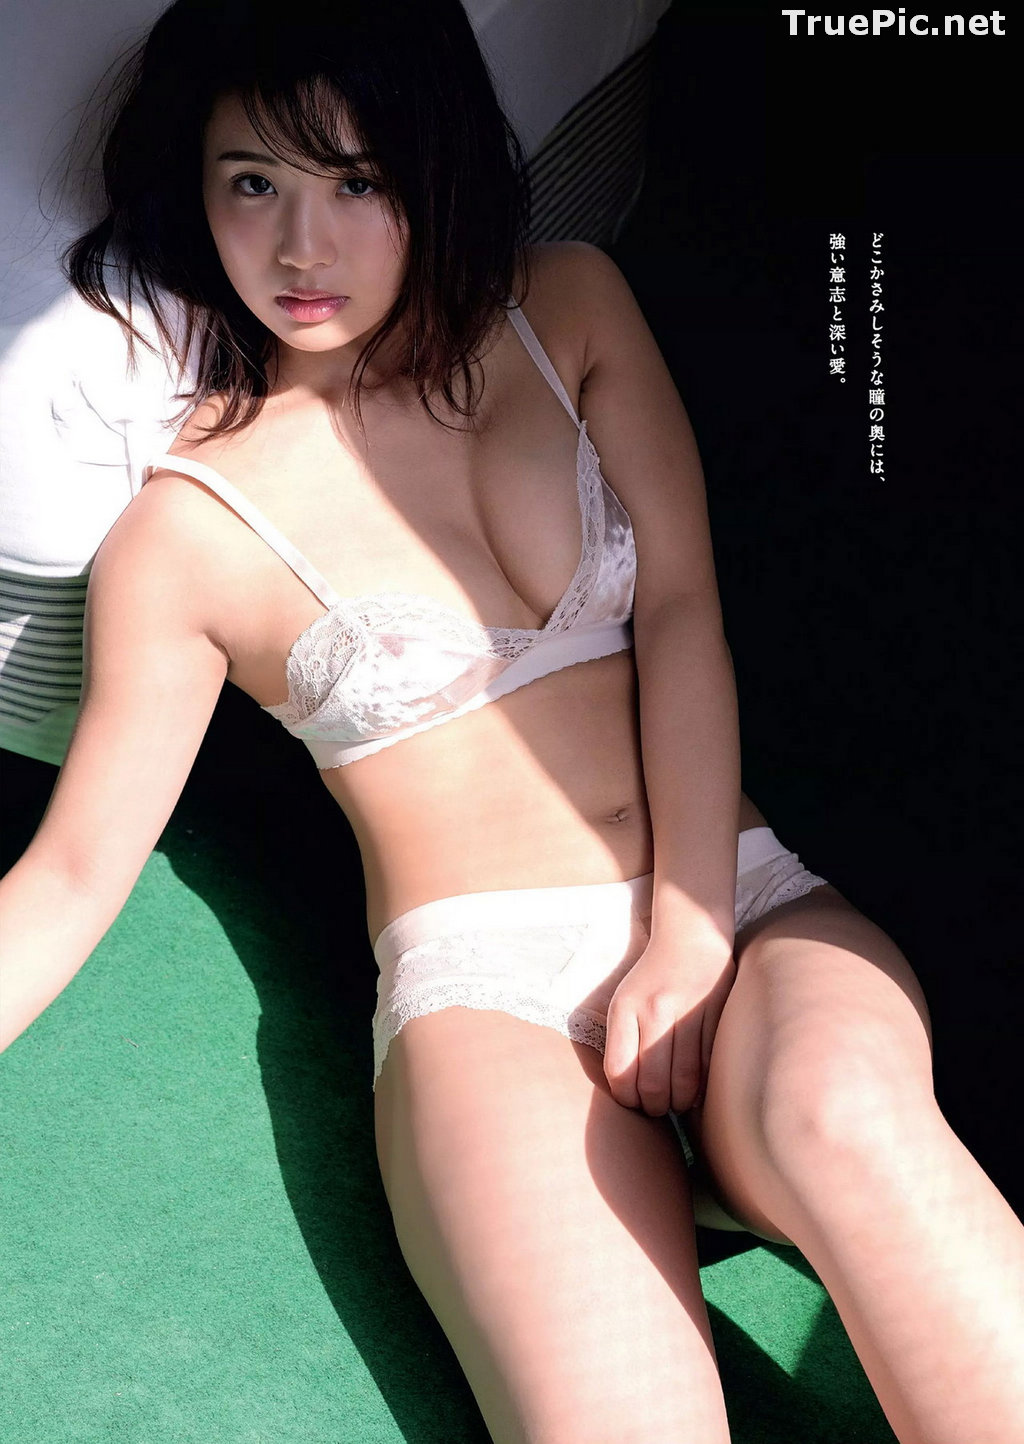 Image Japanese Actress And Model – Natsumi Hirajima (平嶋夏海) - Sexy Picture Collection 2021 - TruePic.net - Picture-10